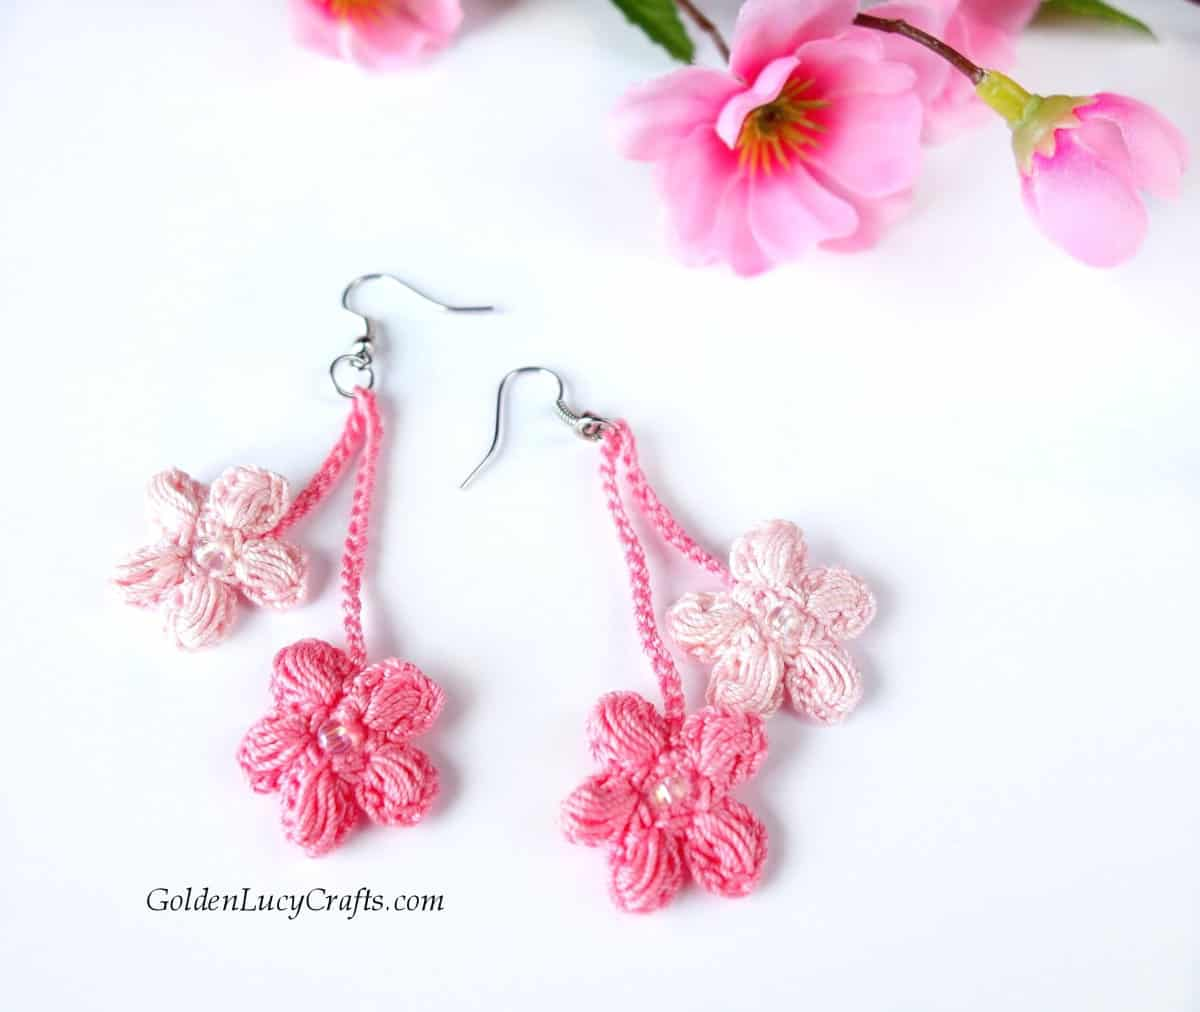 Crocheted cherry blossom earrings, cherry flowers in the background.